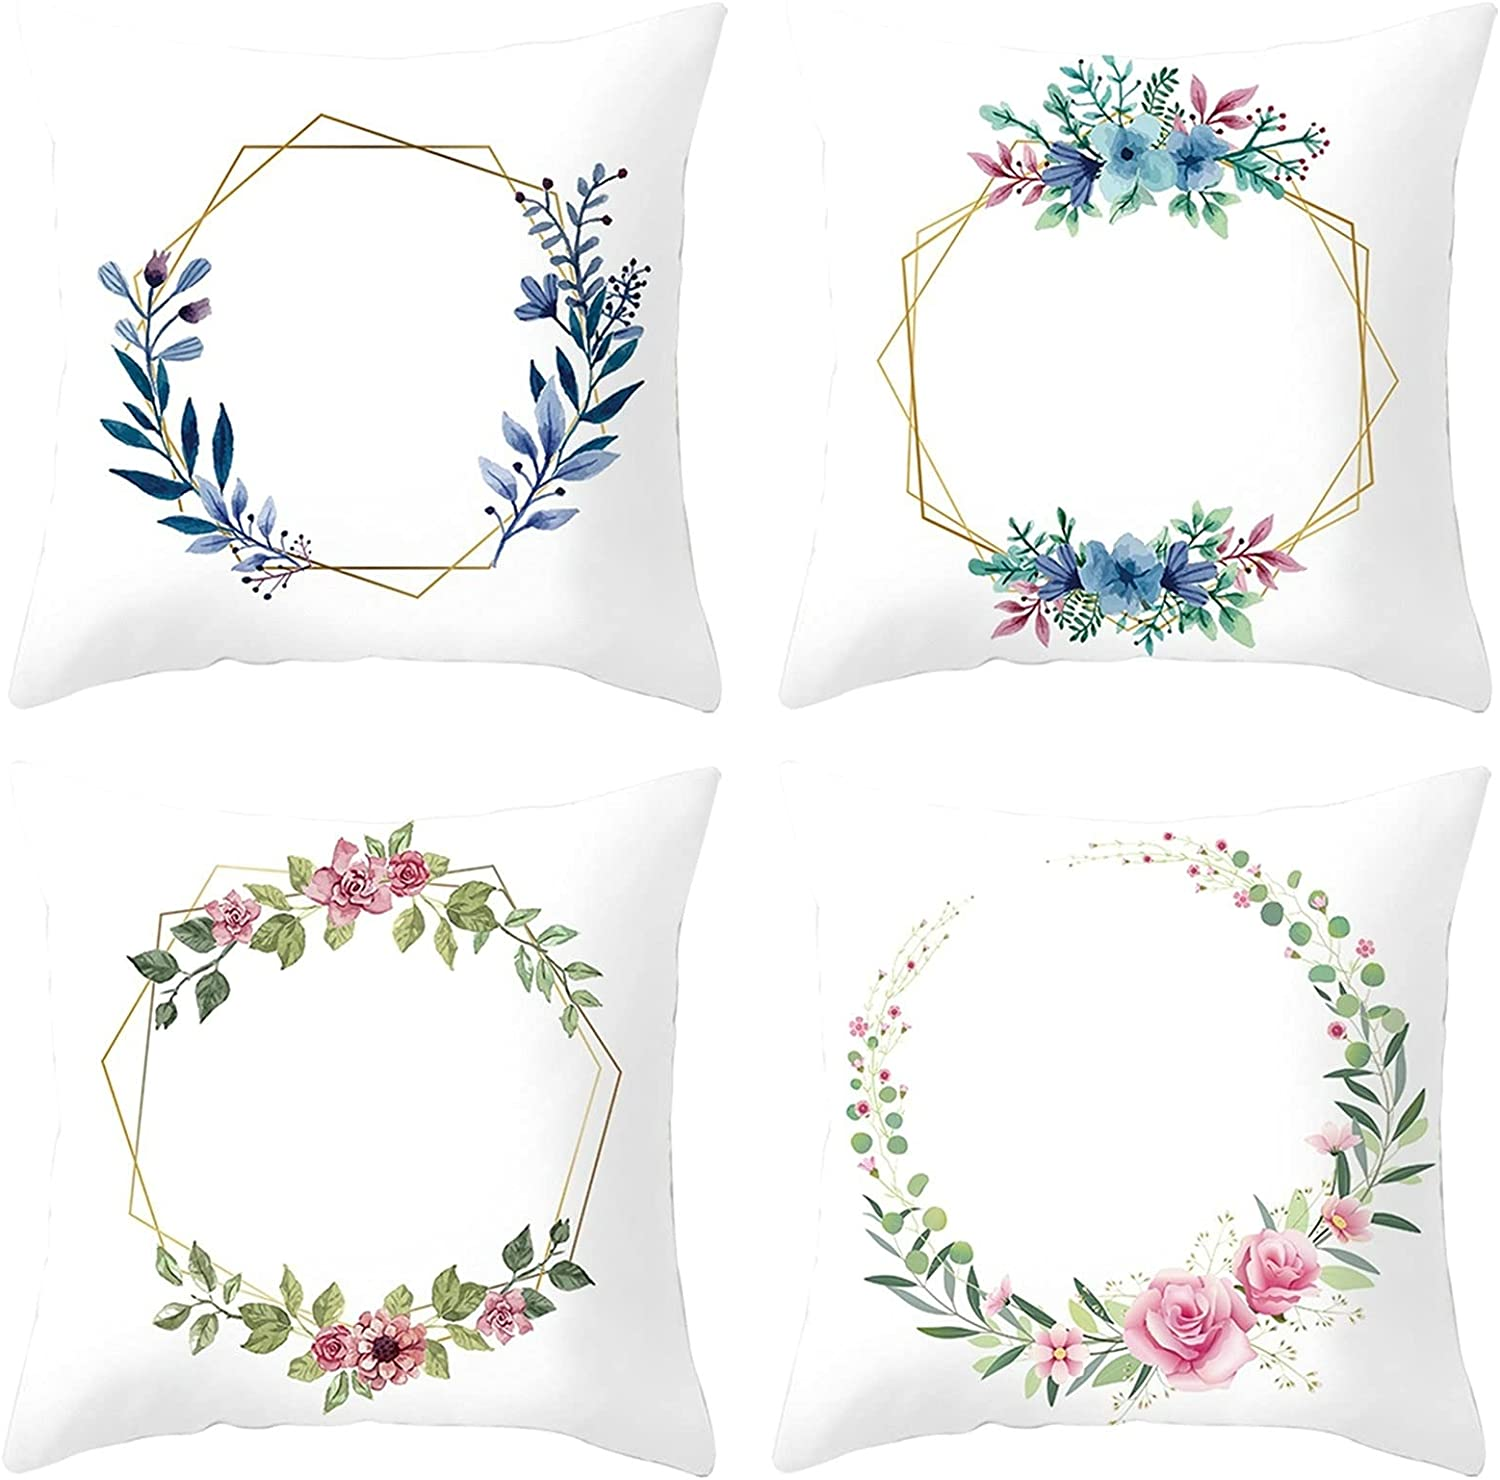 Daesar Pillow Selling Cases Beauty products Decorative Pillowcase Living Room Pack 4 Wh